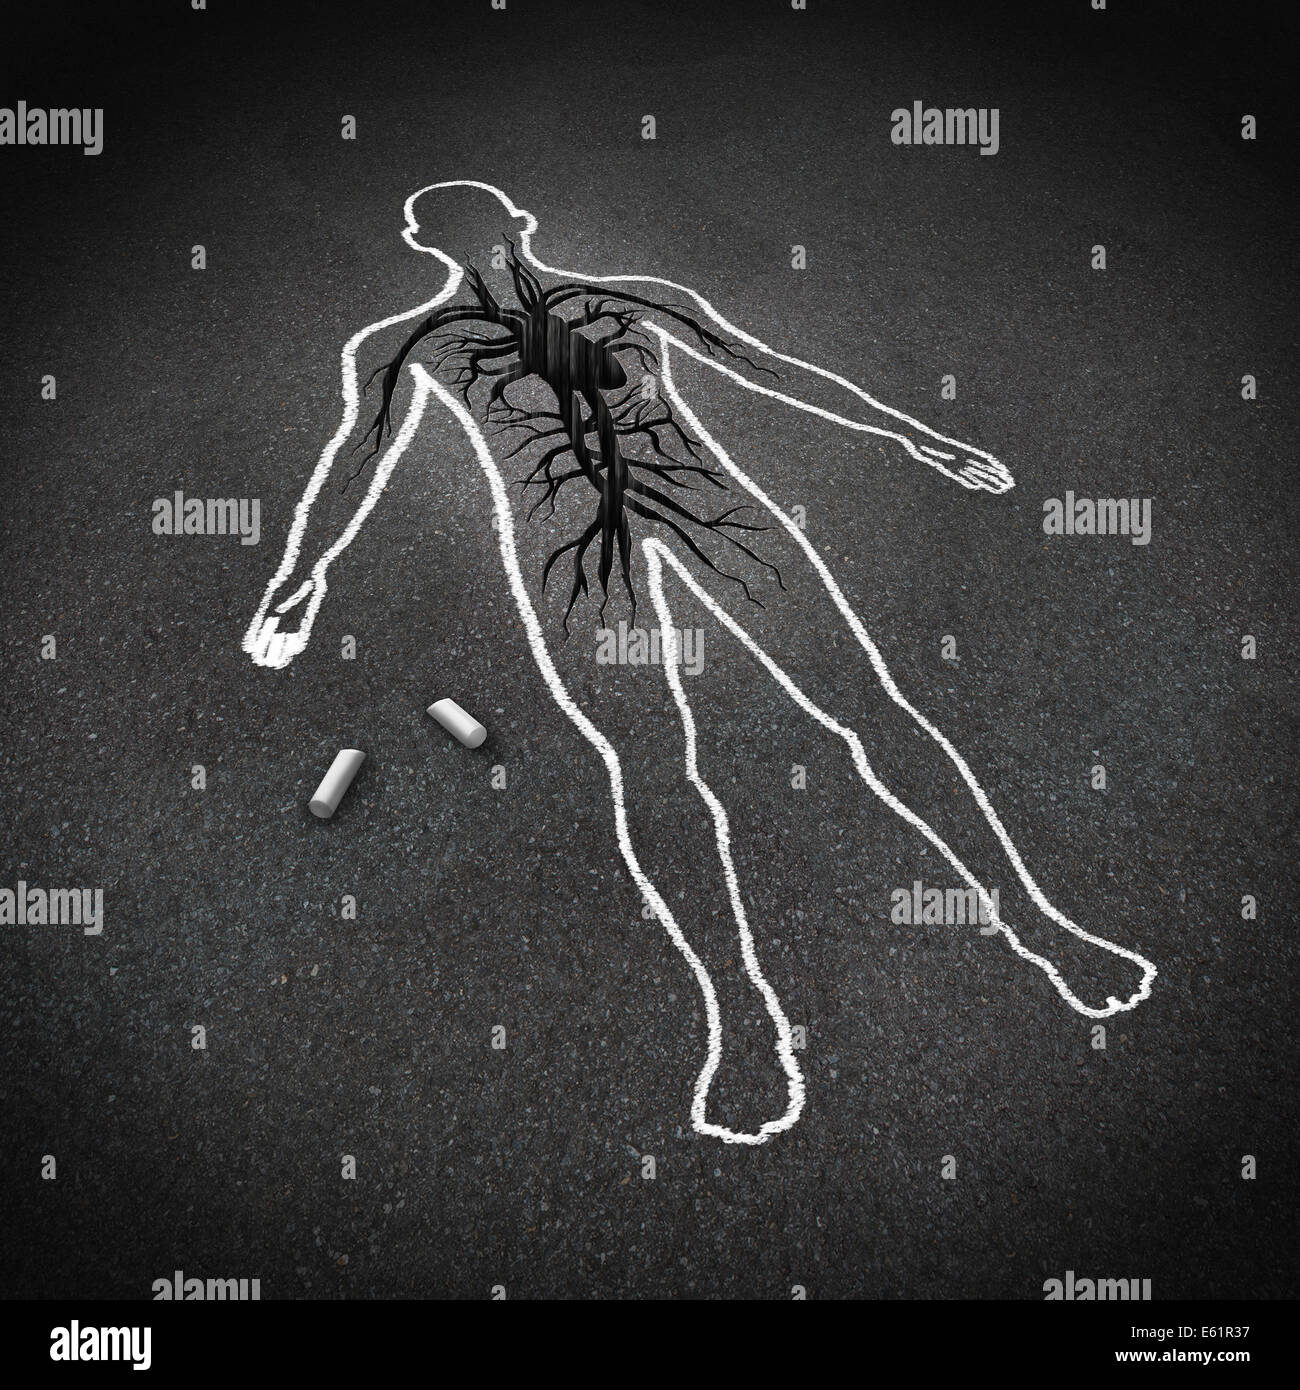 Heart attack medical concept as a chalk drawing of a human on a pavement floor with a cracked hole in the asphalt - Stock Image